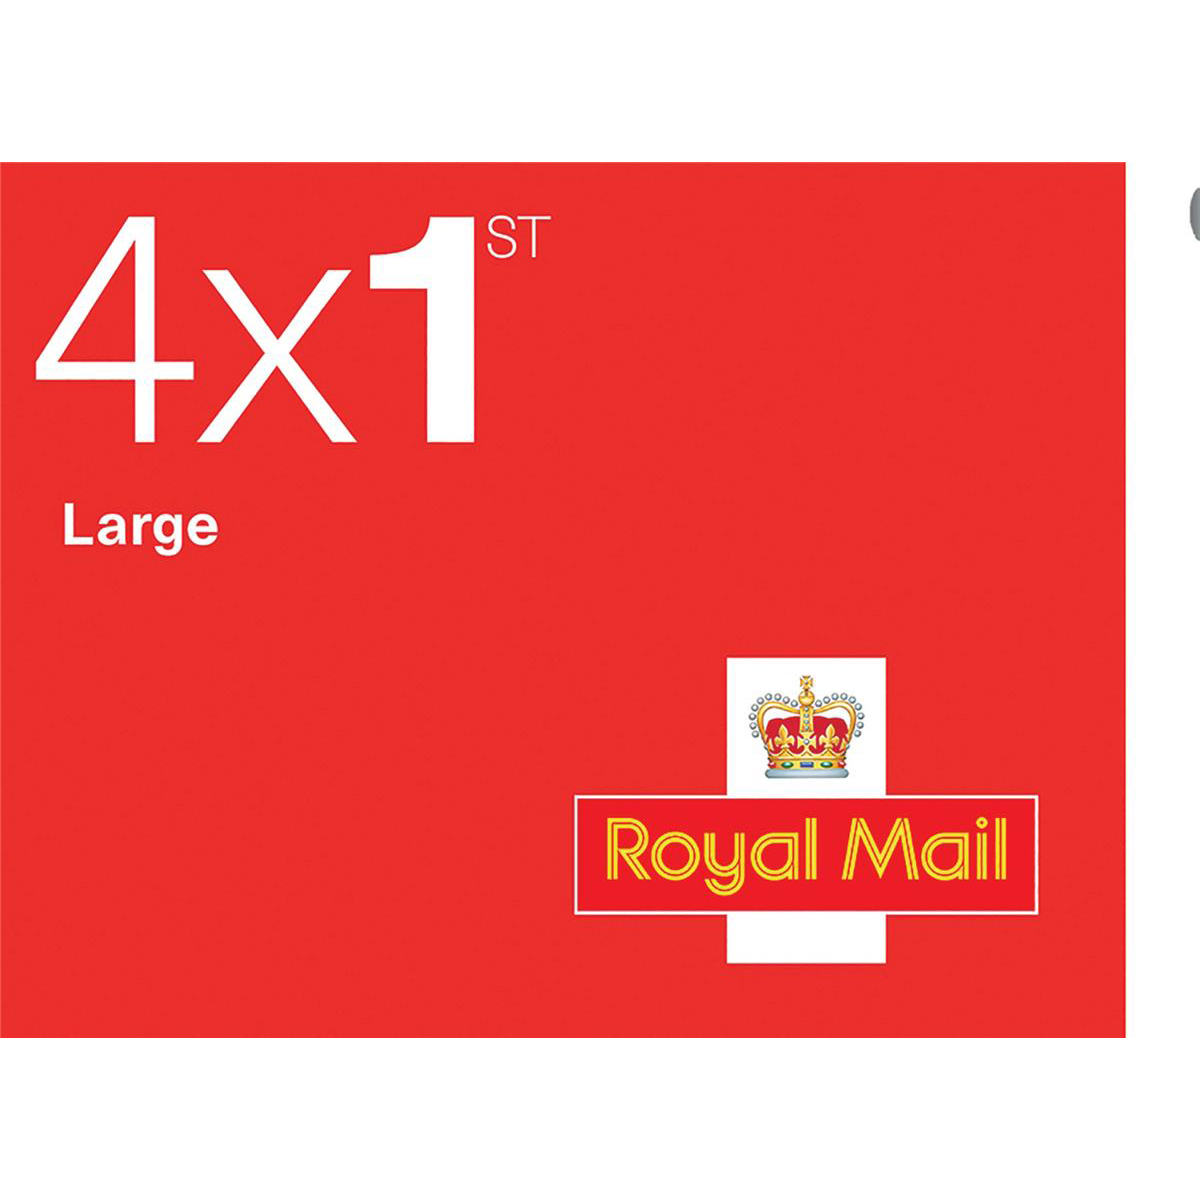 Image for Royal Mail First Class Large Letter Stamps [25 x Book of 4]